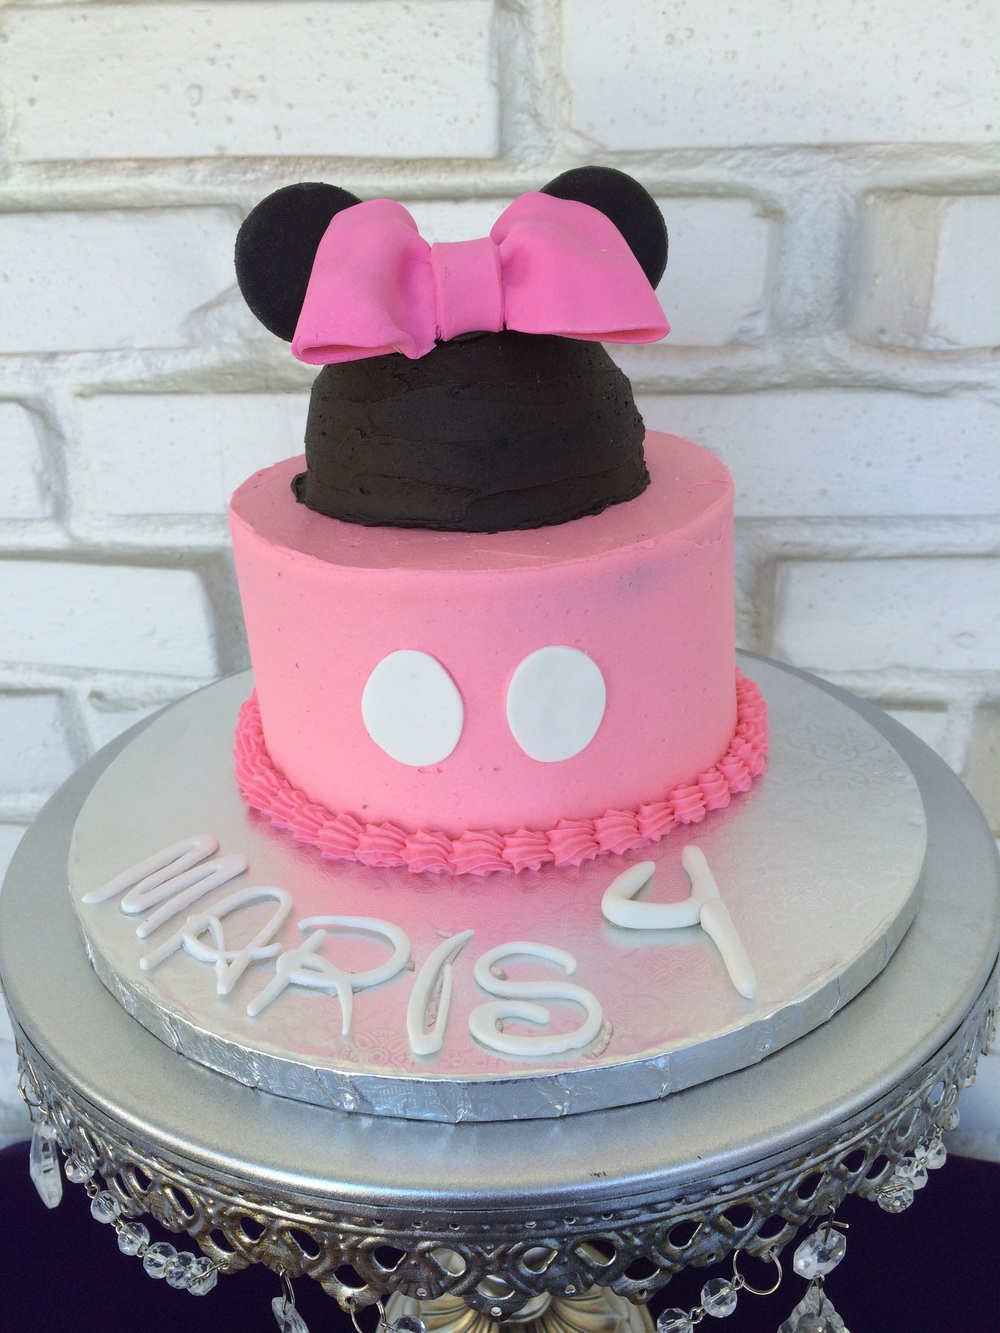 Chocolate cake filled with black cocoa buttercream and topped with vanilla buttercream and fondant accents